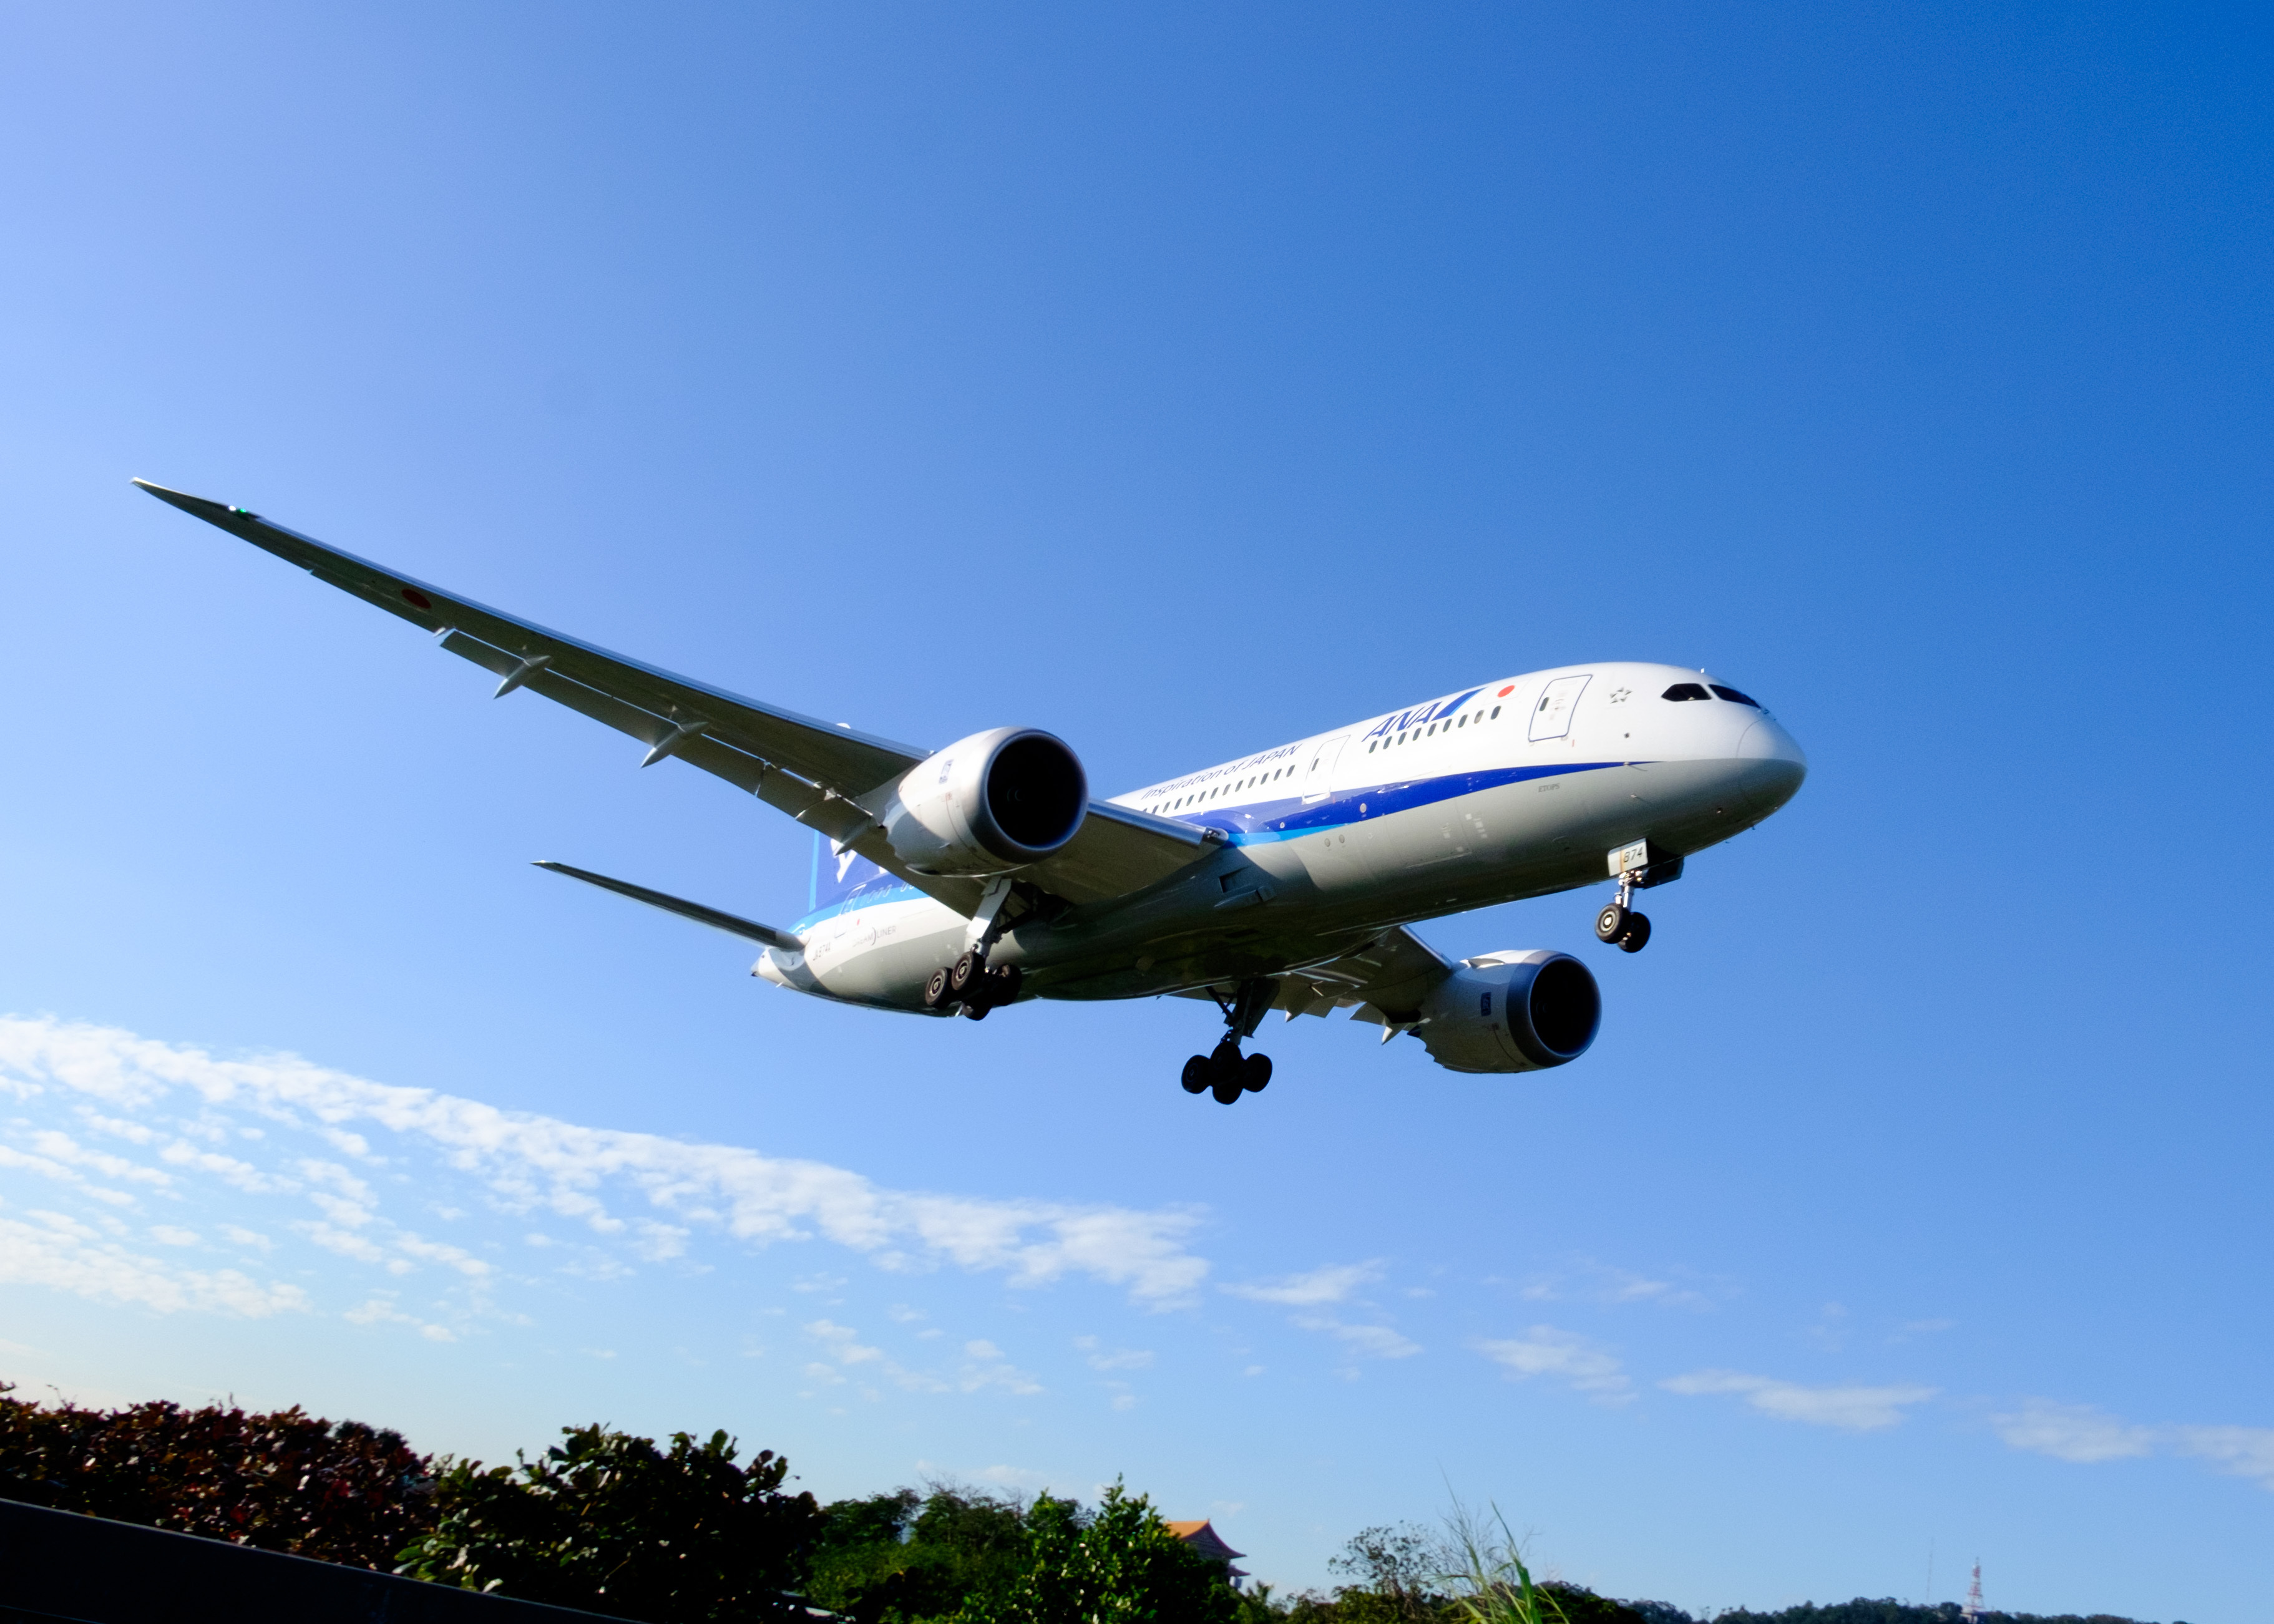 ANA_Boeing_787-881_JA874A_on_Final_Approaching_at_Taipei_Songshan_Airport_20151222a.jpg